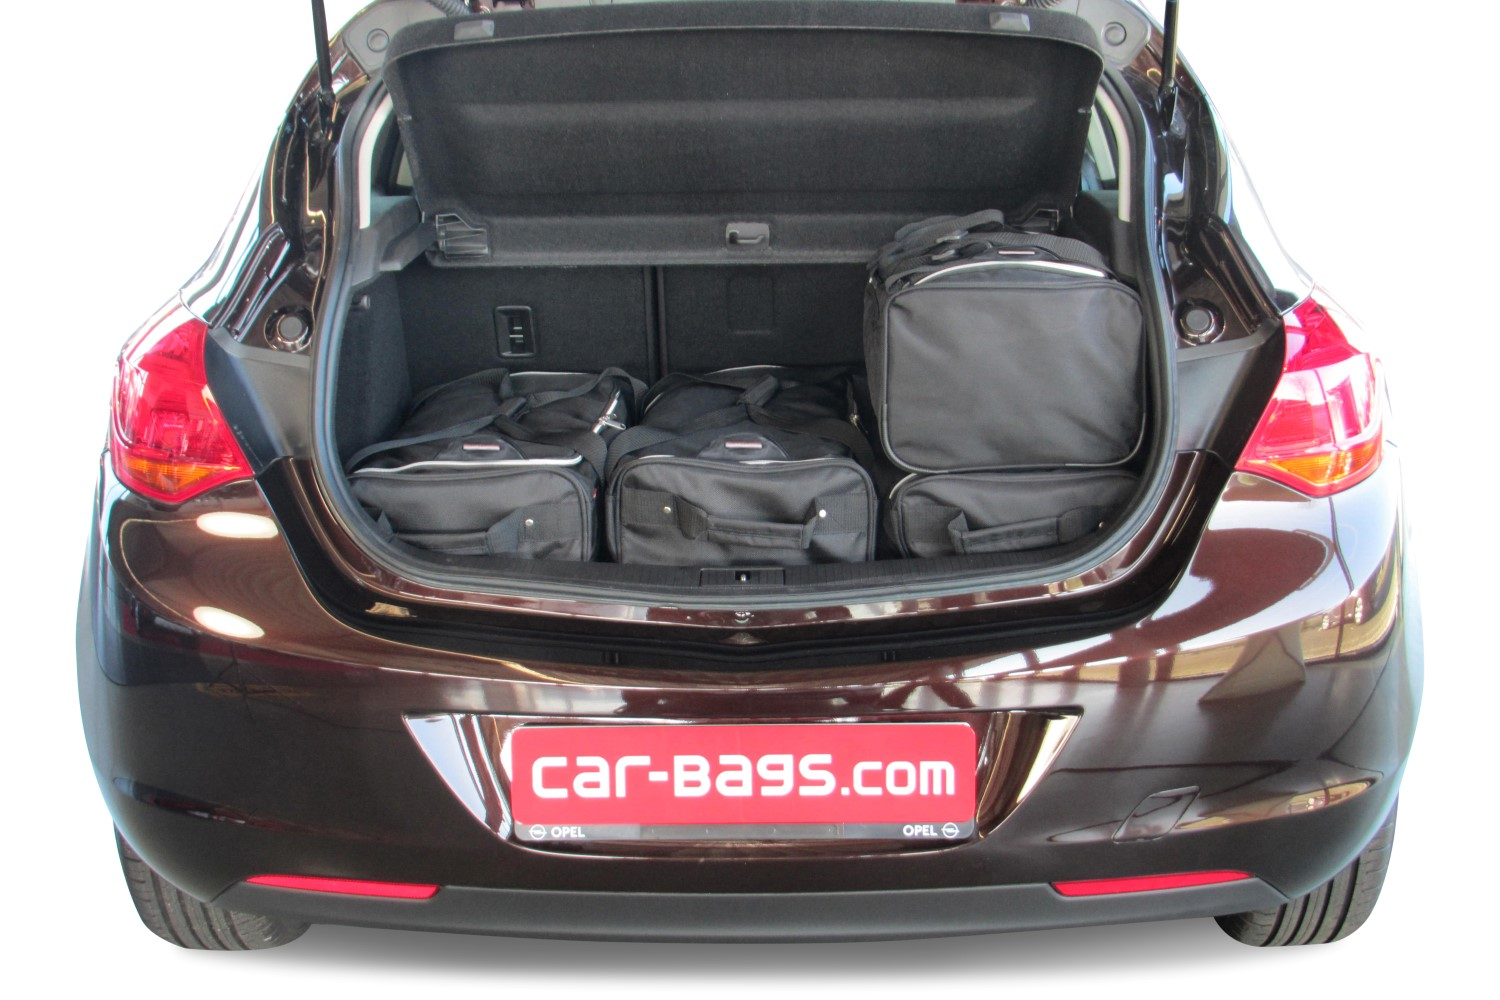 Astra: Opel Astra J 2009-2015 5d Car-Bags travel bags